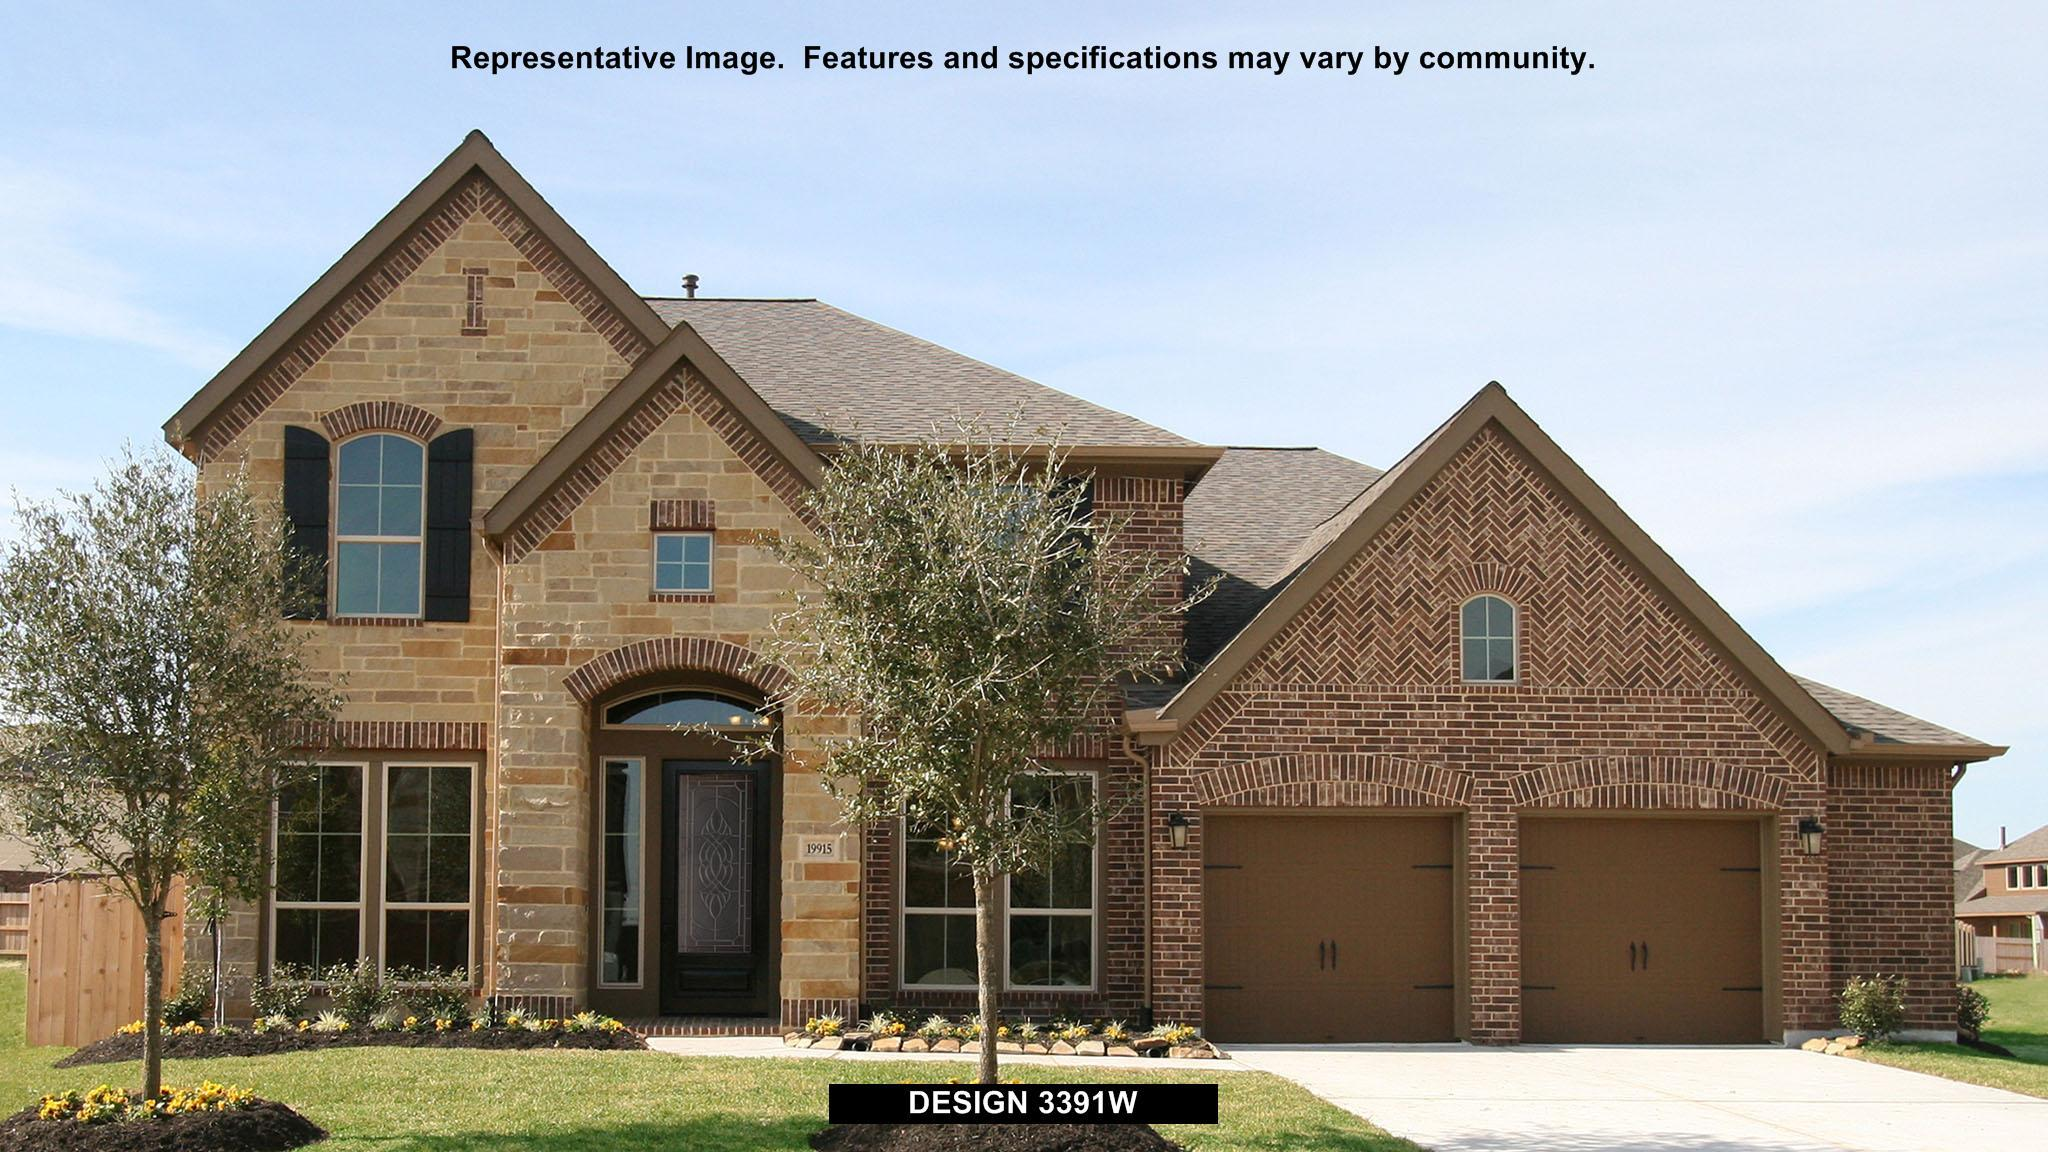 3391W - Firethorne: Firethorne 60': Katy, TX - Perry Homes